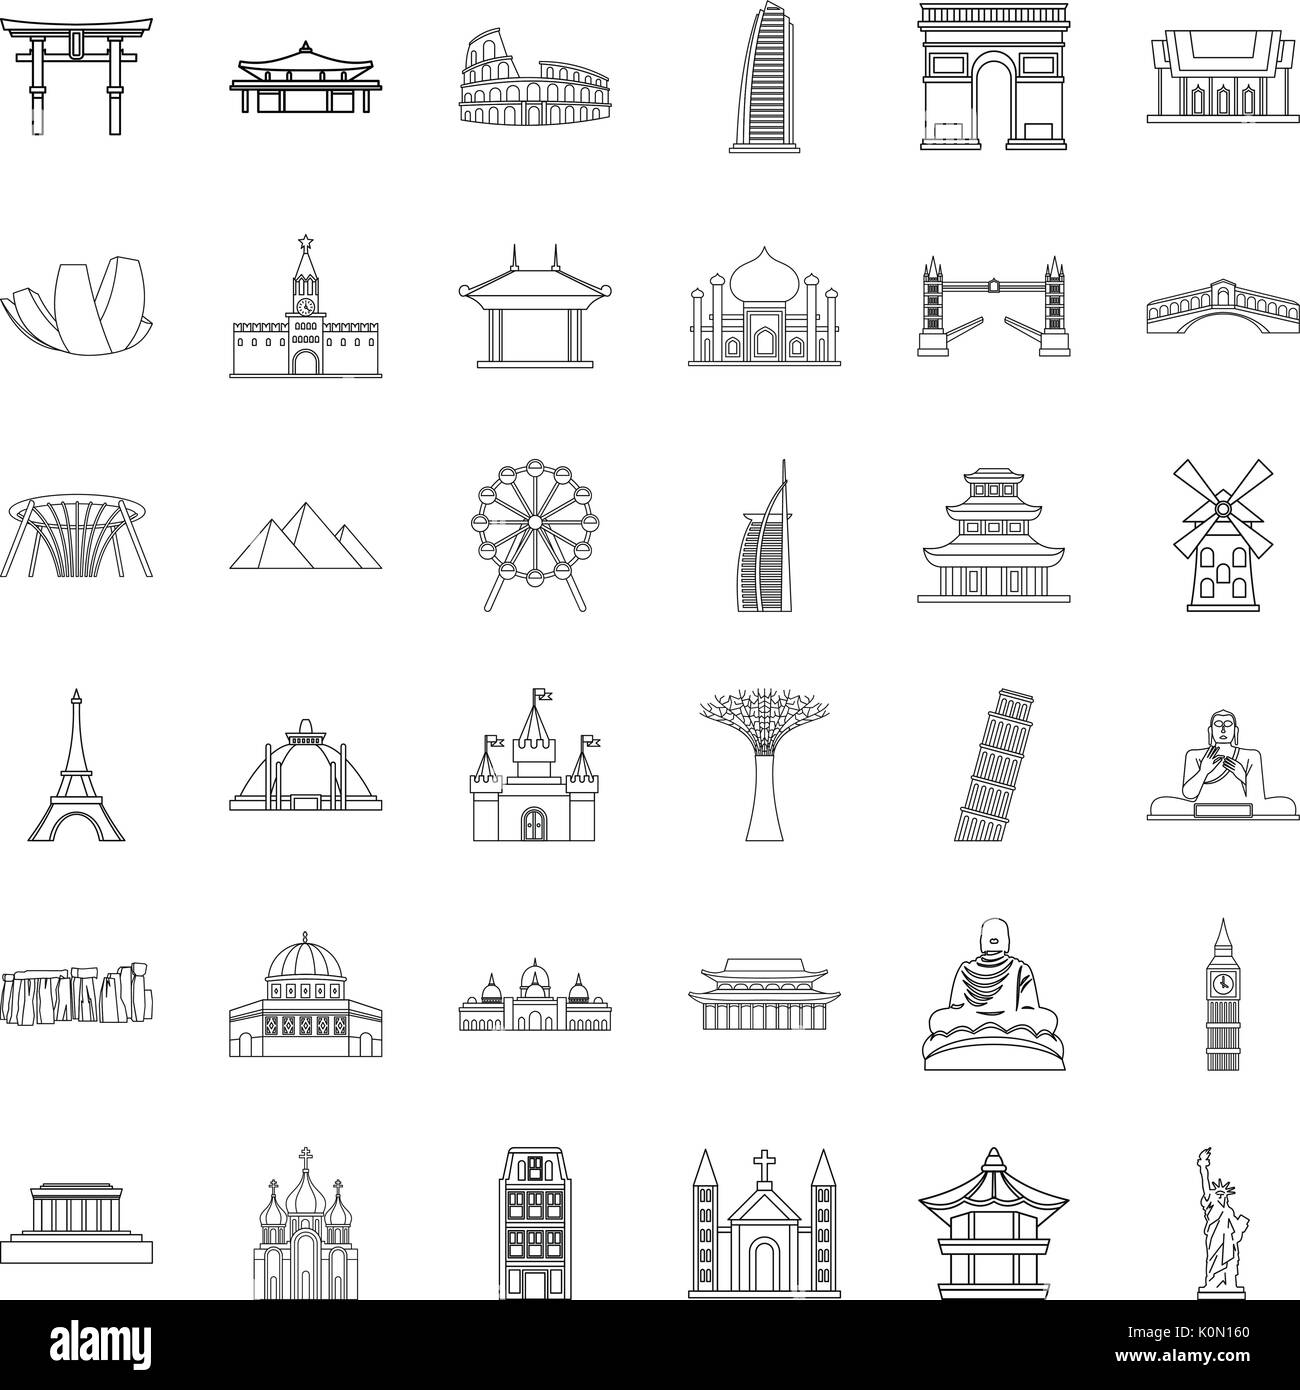 Famous place icons set, outline style - Stock Vector